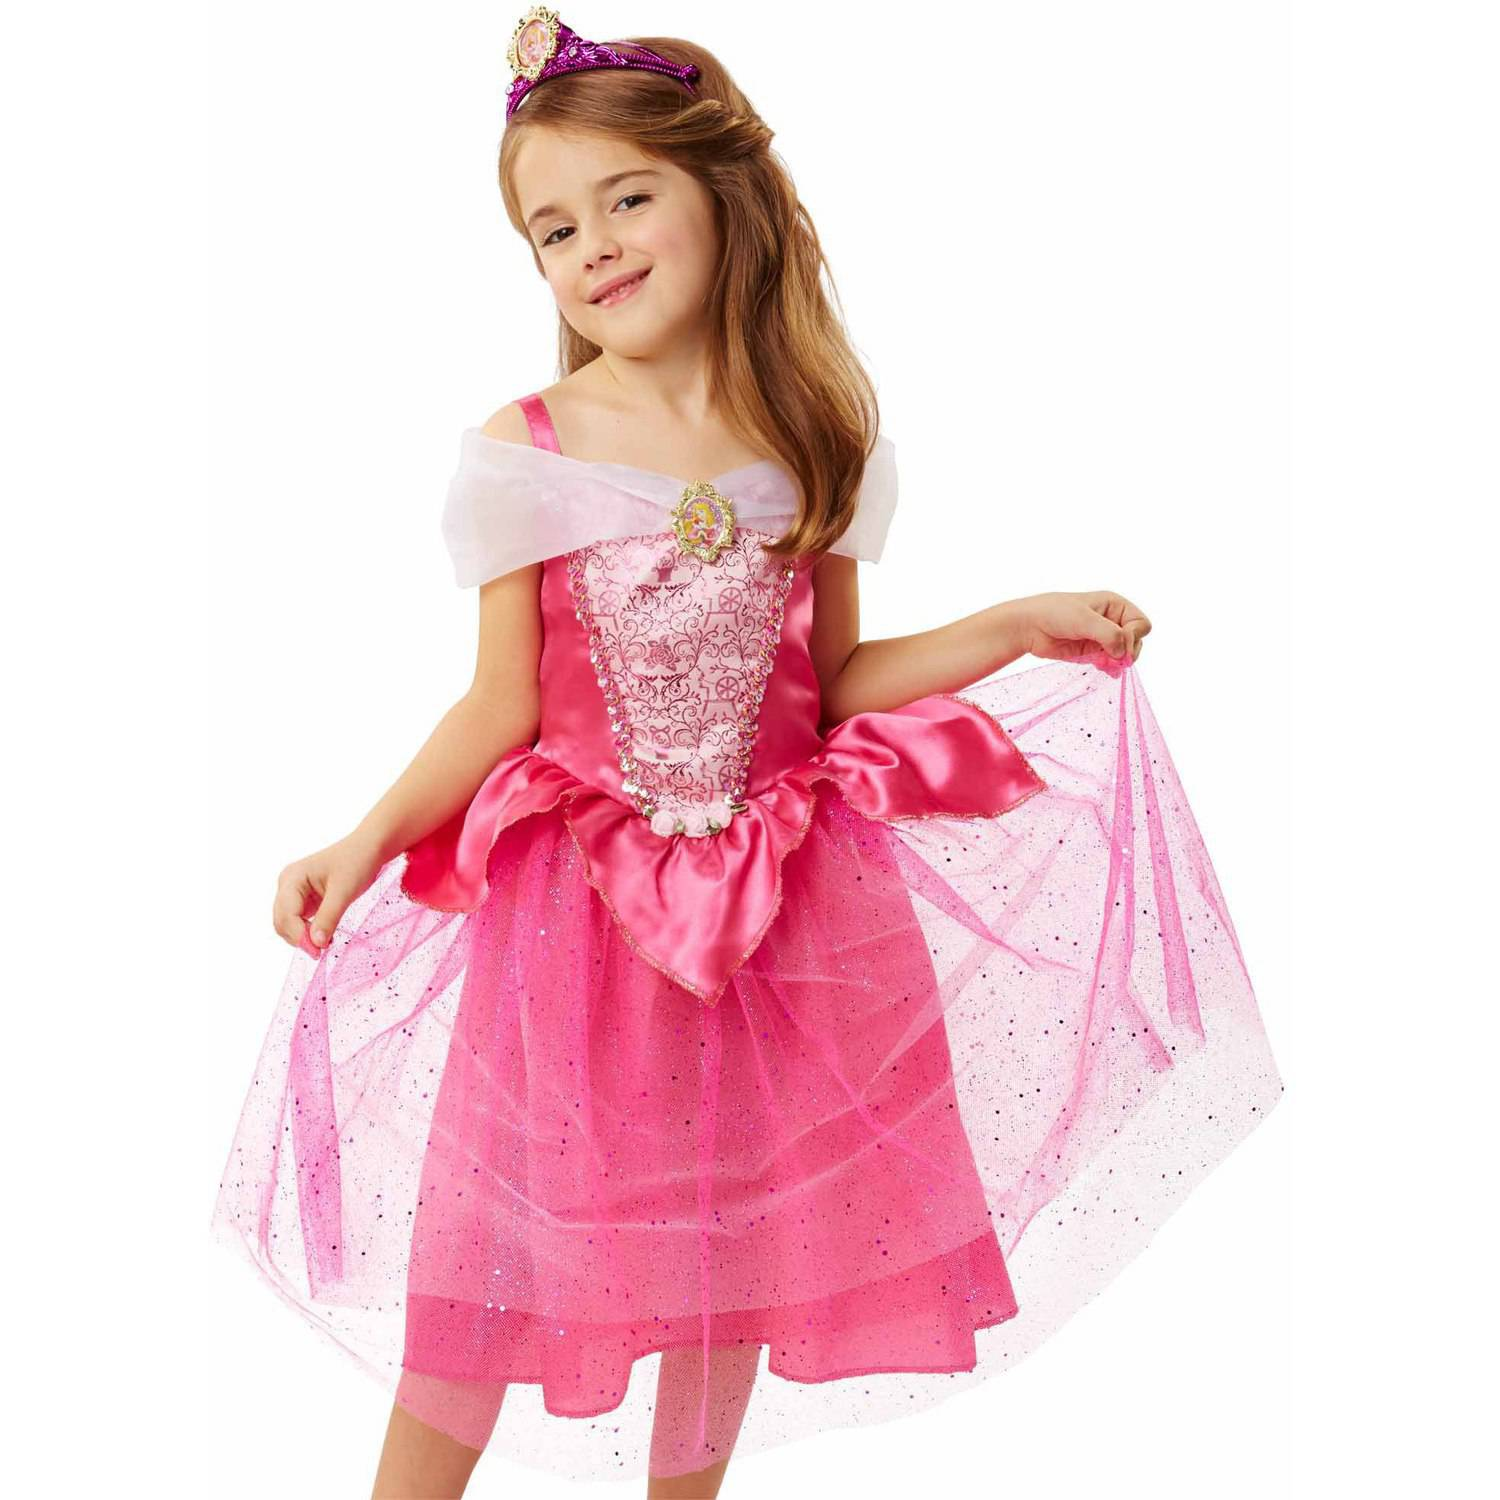 Size 56 Aurora Sleeping Beauty Birthday Outfit Sleeping Beauty Princess Dress Birthday Outfit Pinafore Dress and Crown Princess Dress